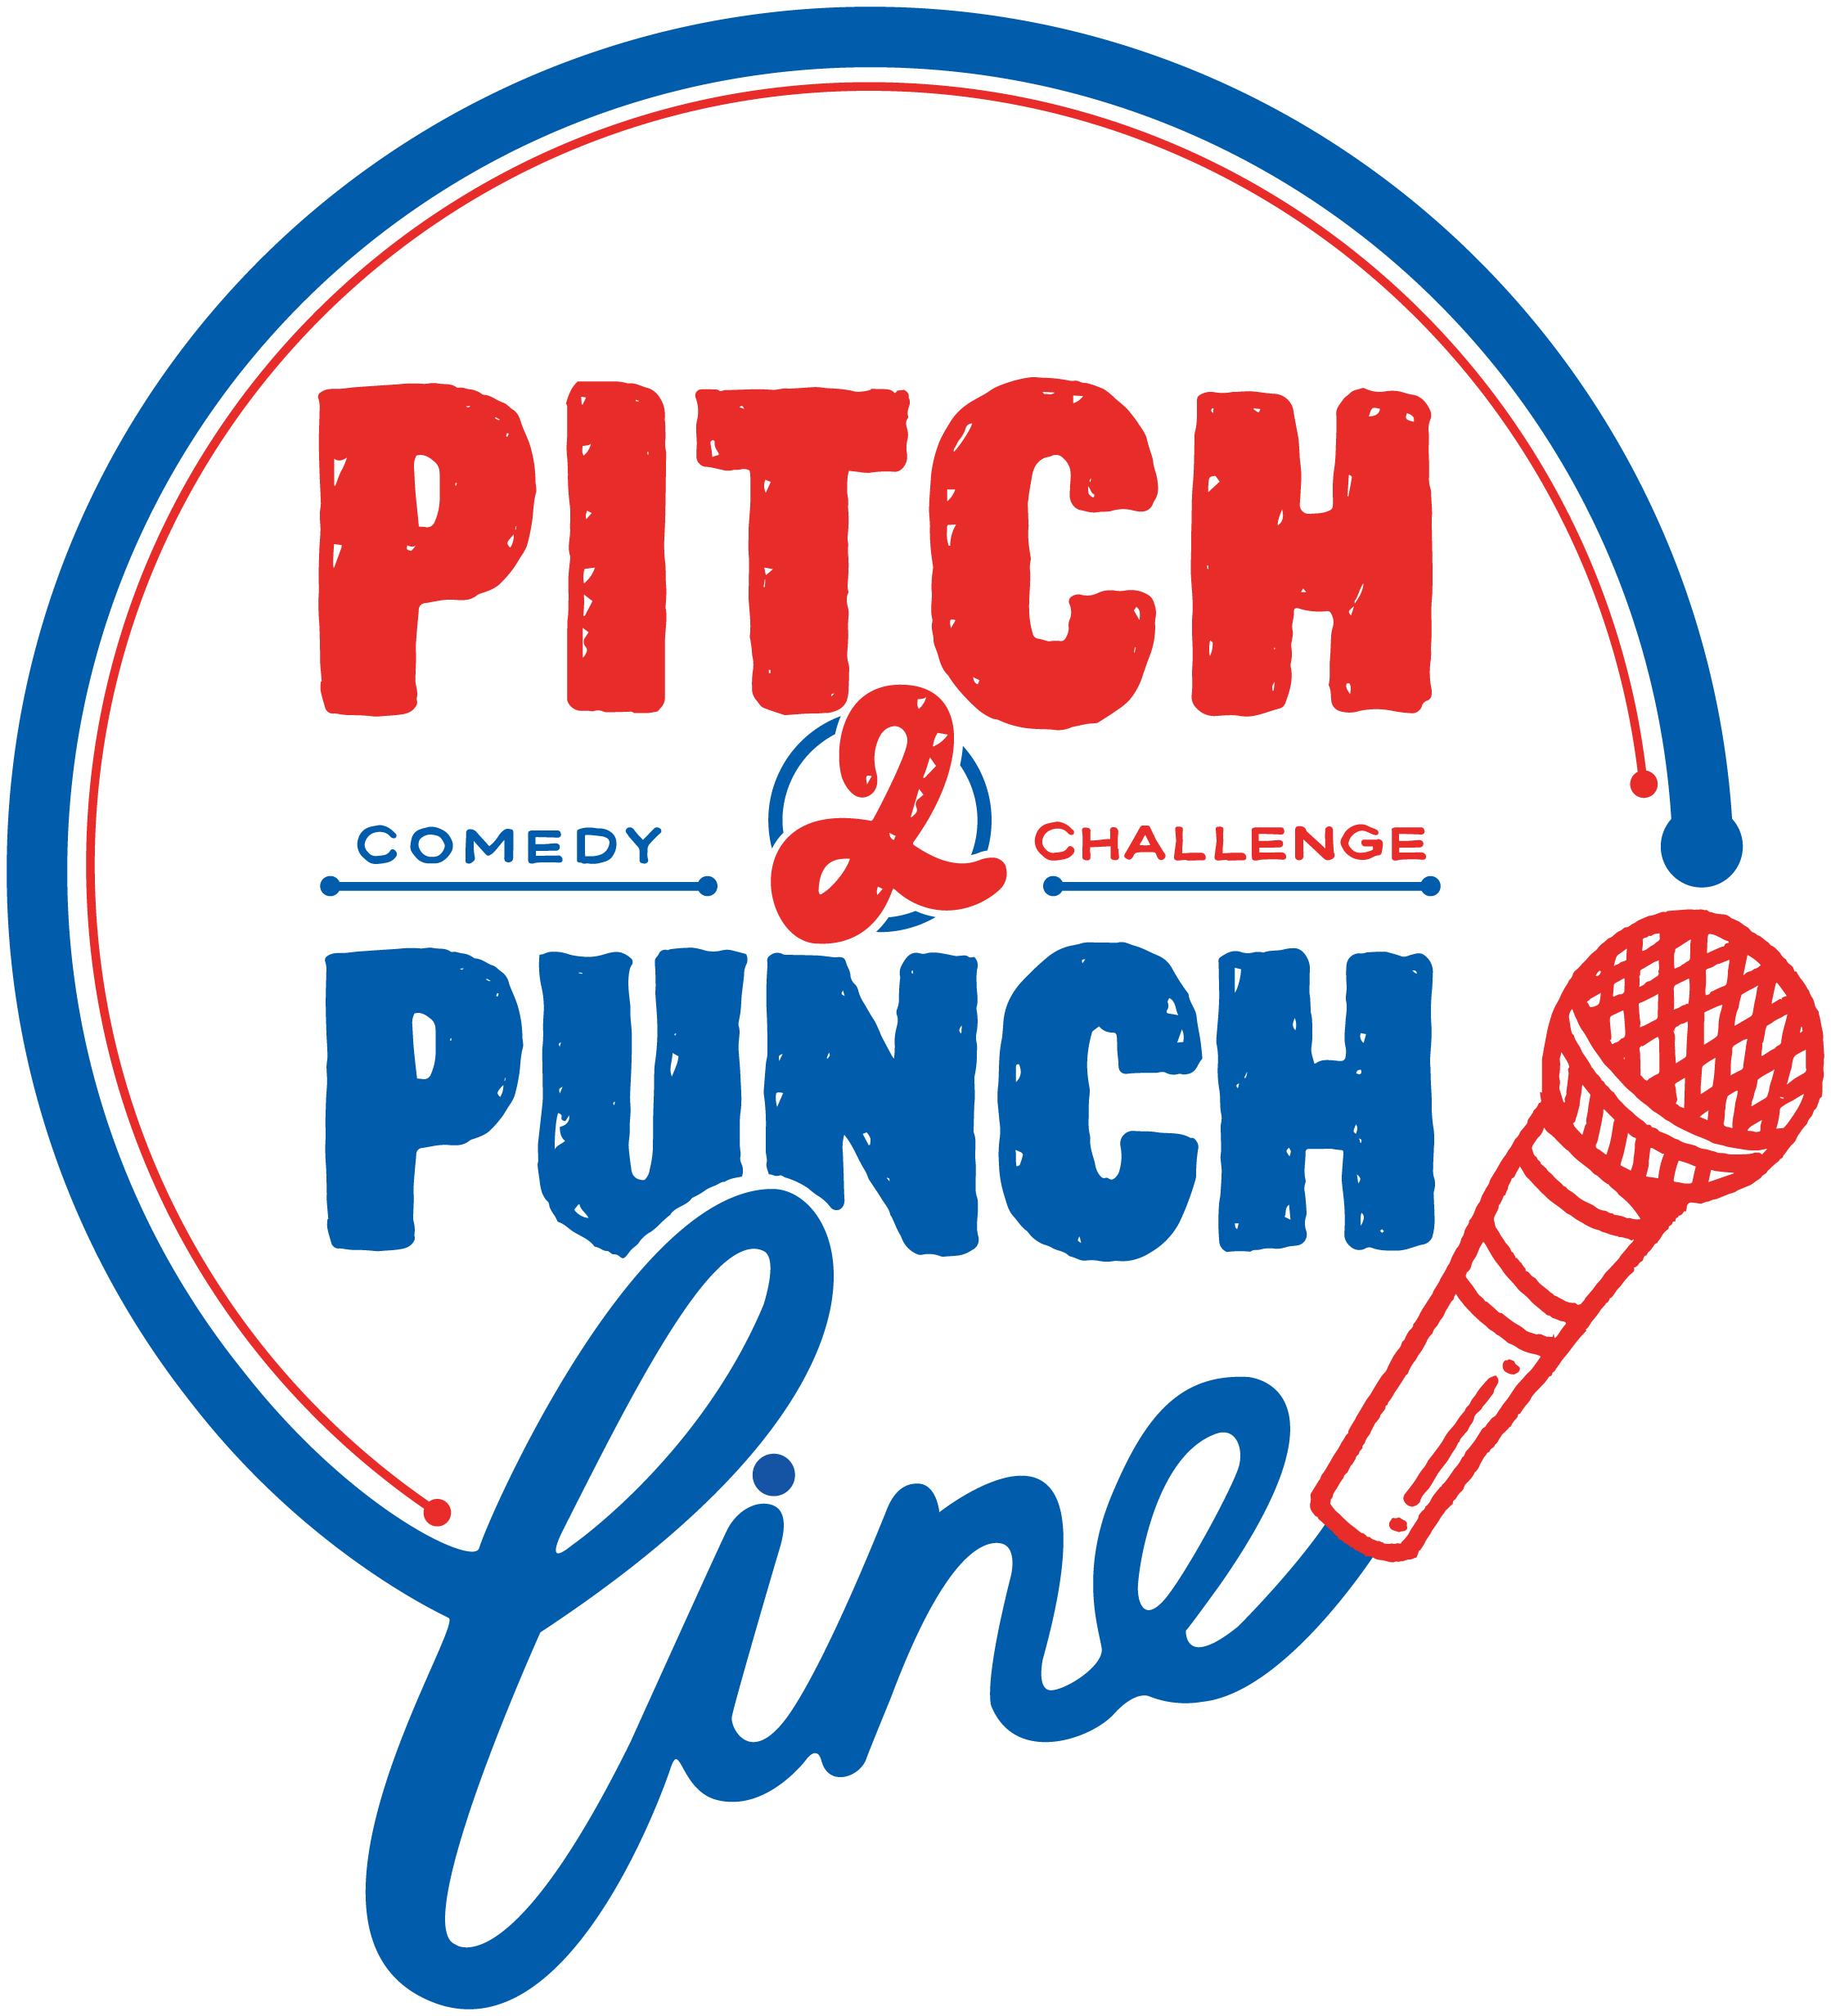 pitch to punchline logo